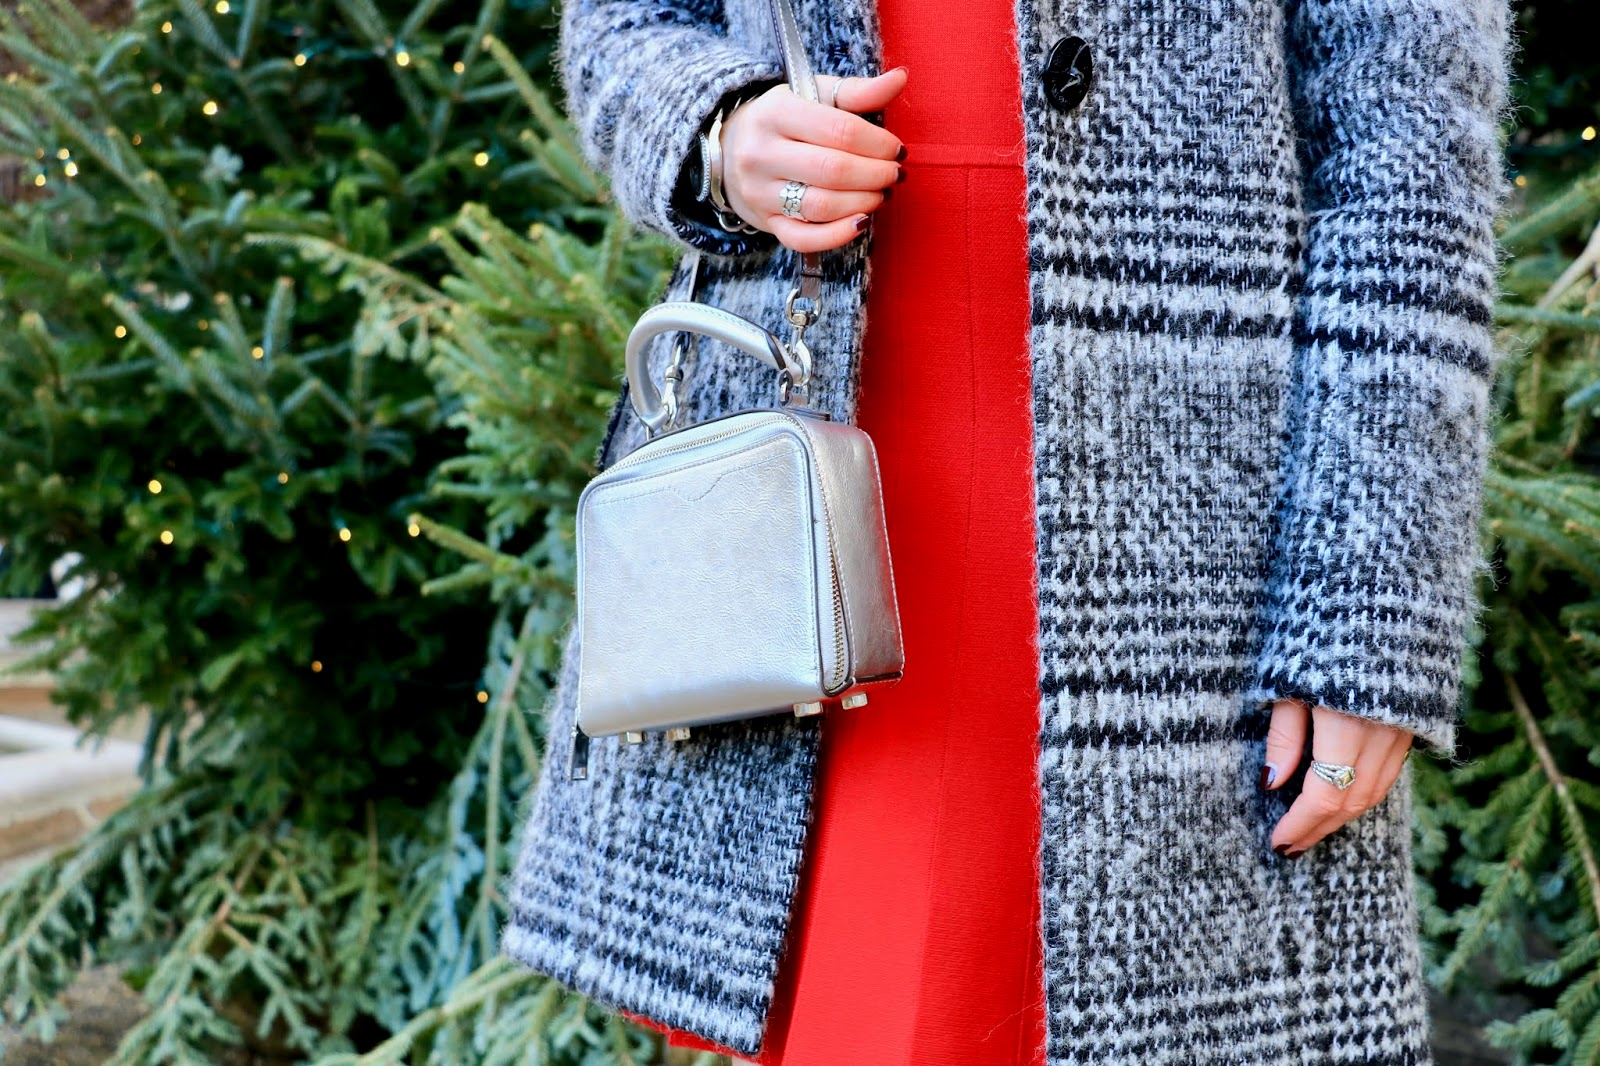 Nyc fashion blogger Kathleen Harper wearing a silver Rebecca Minkoff purse